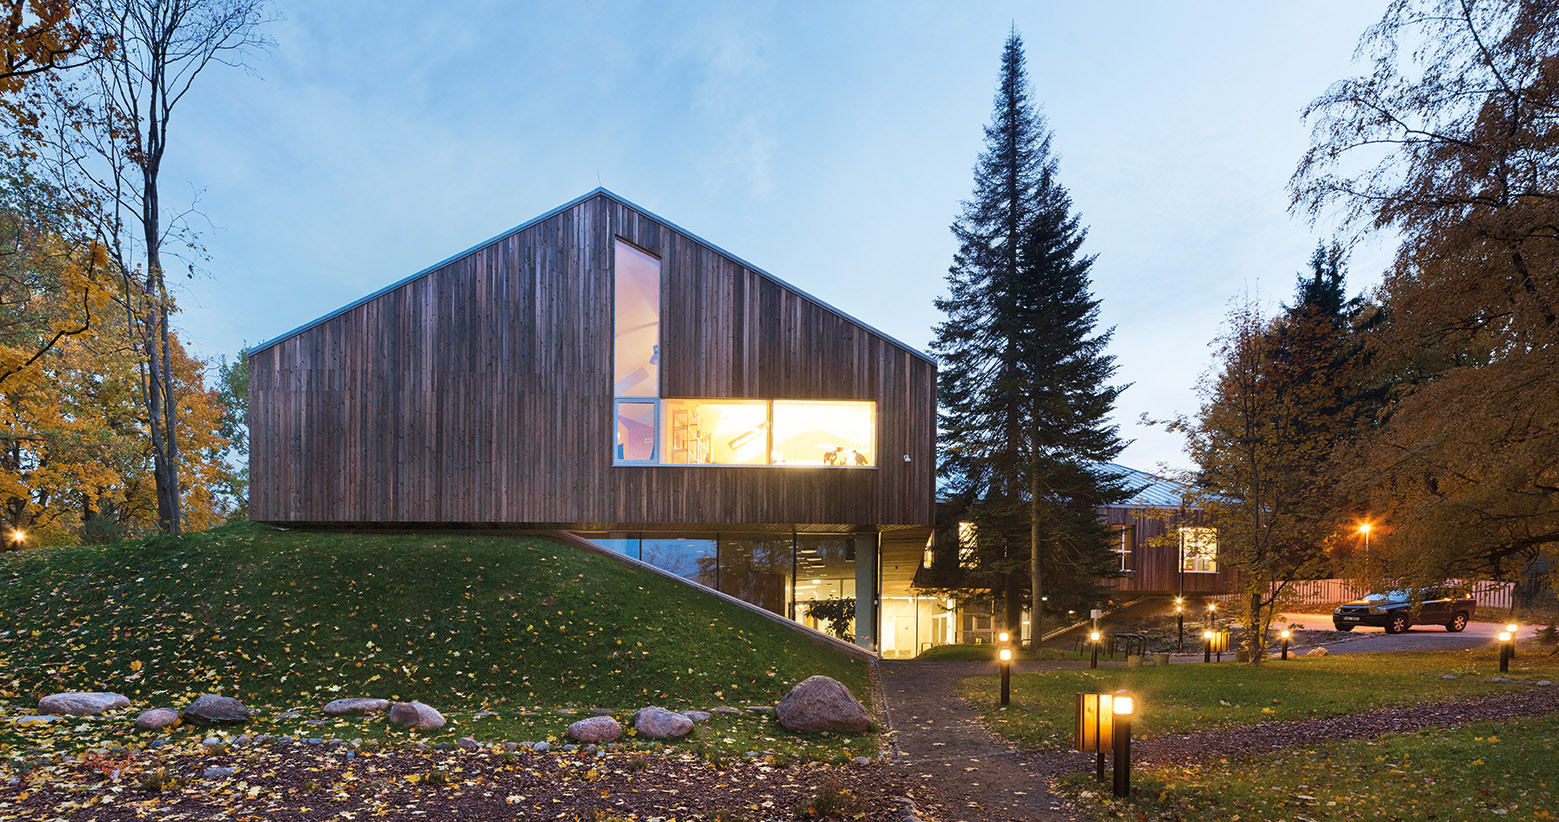 Tartu Nature House Karisma Architects Archdaily